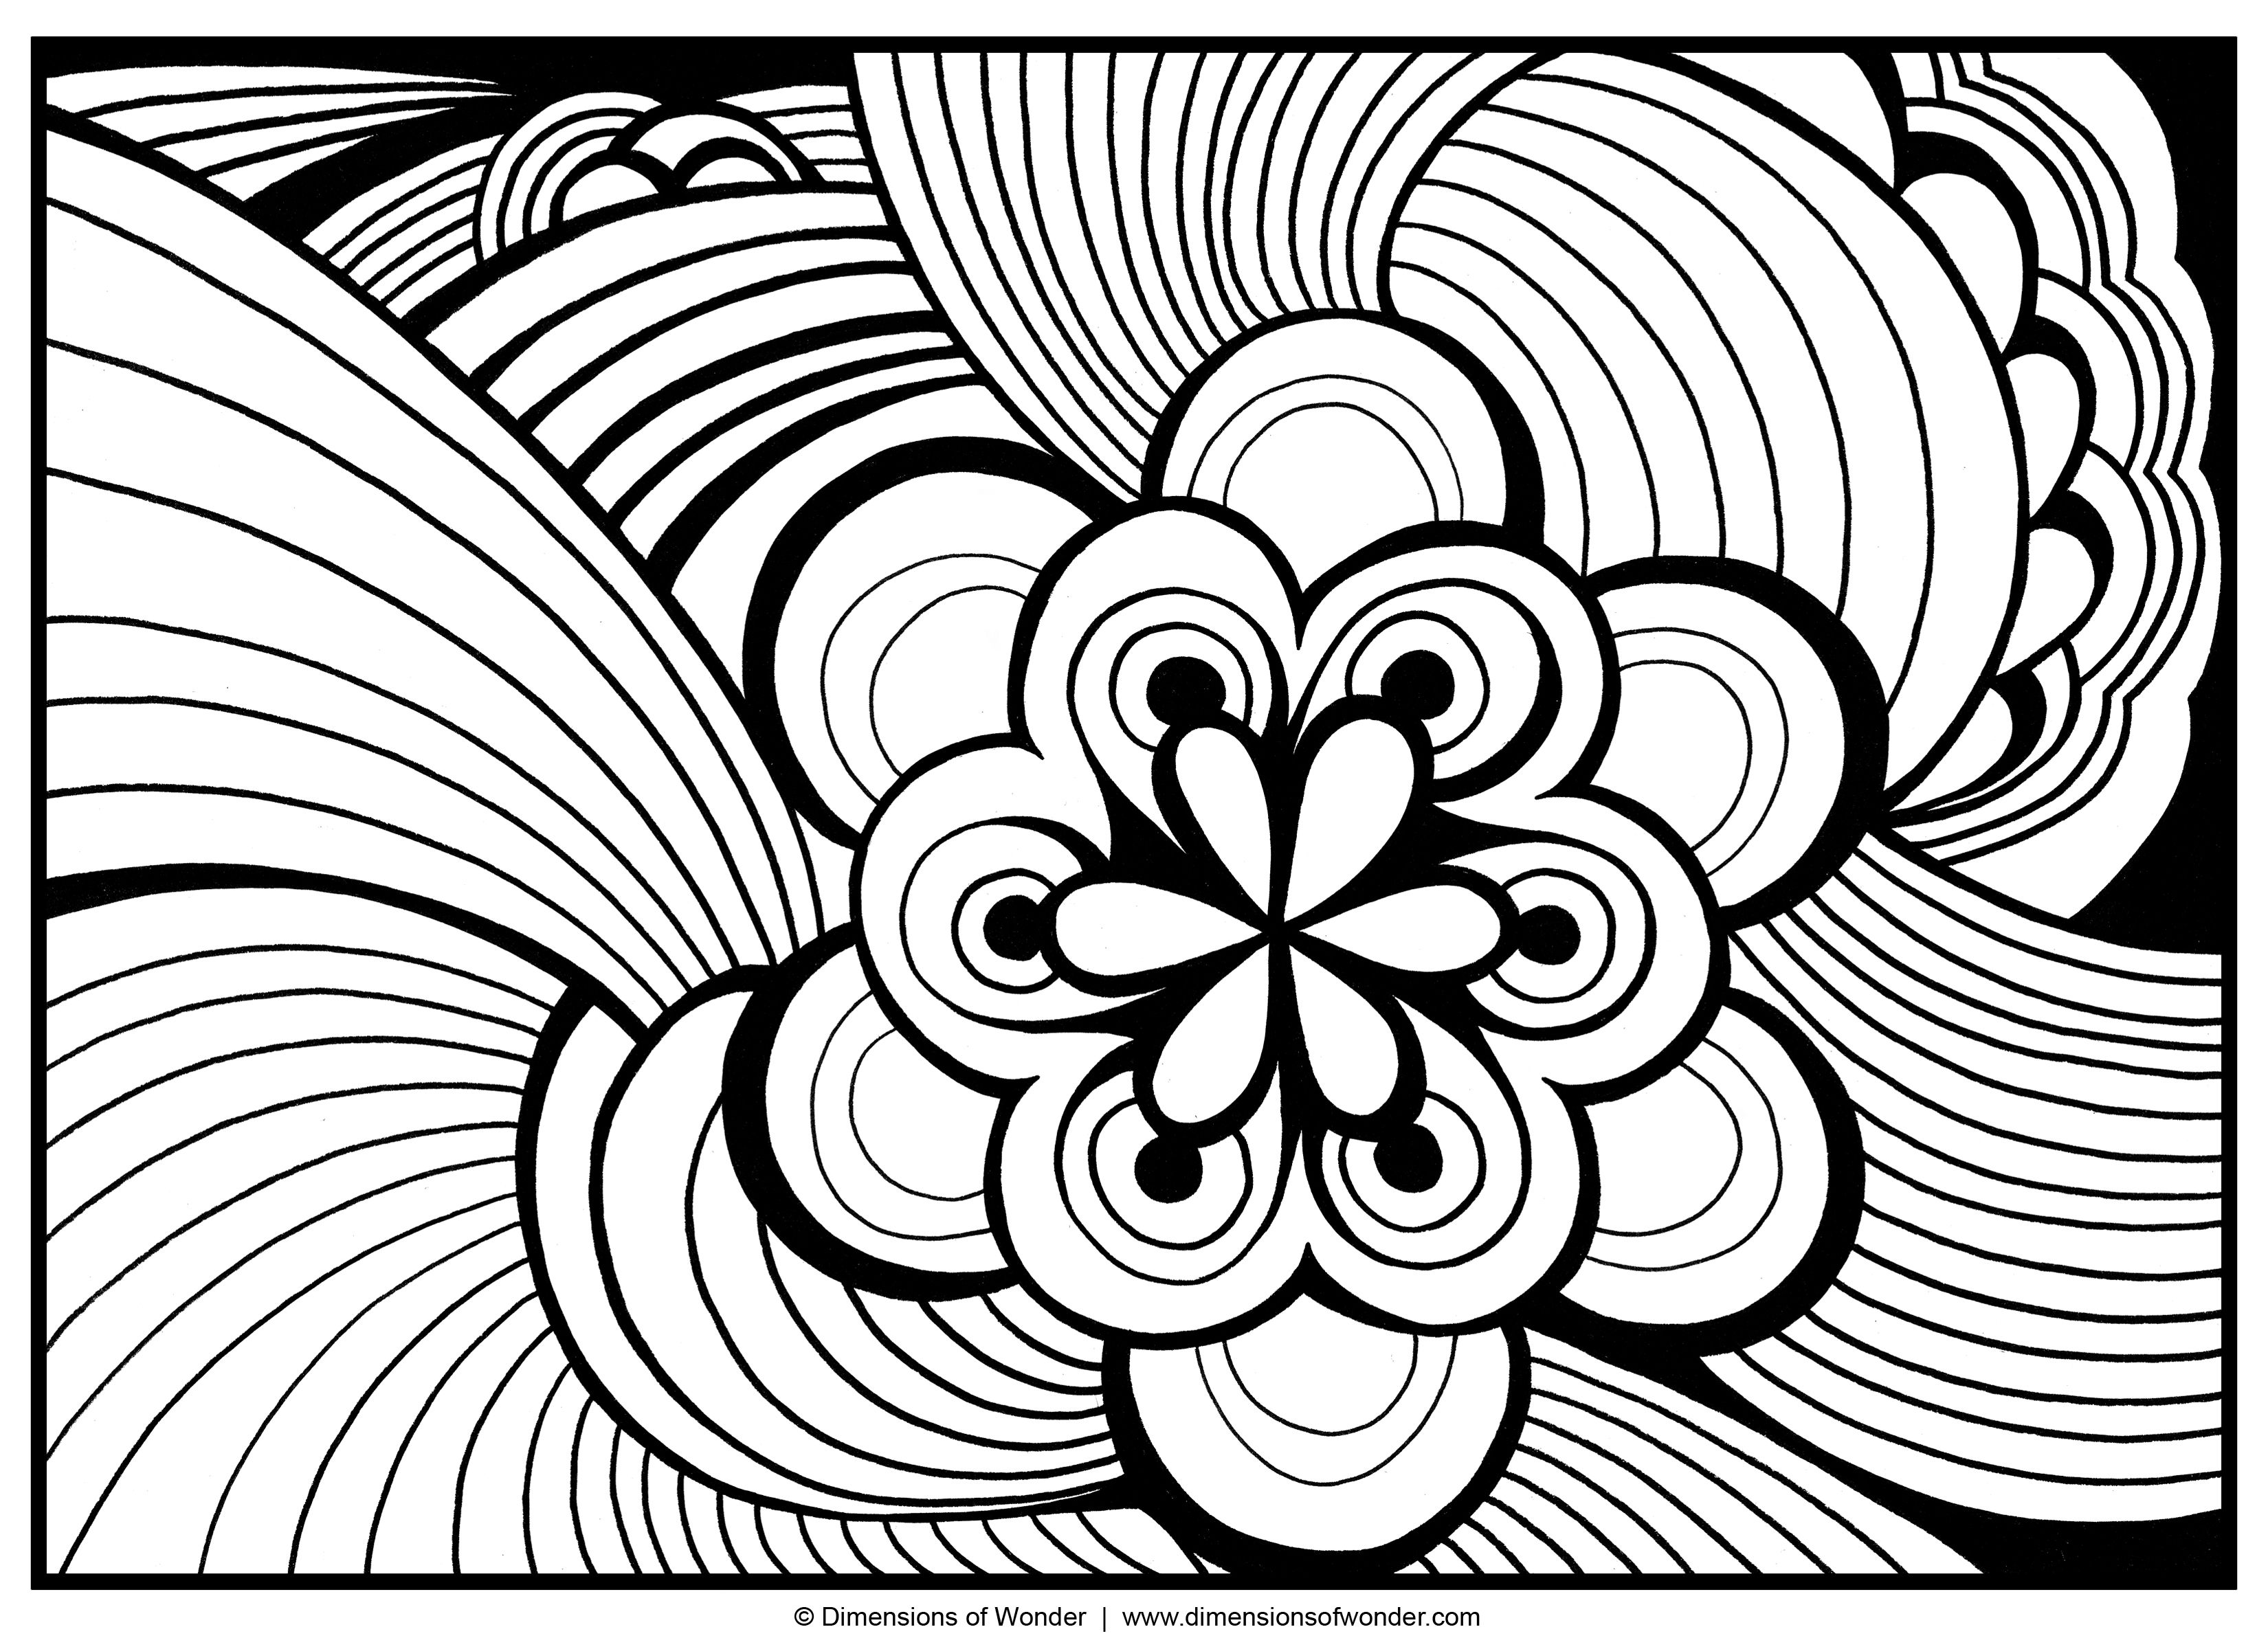 abstract coloring book pages - photo#38